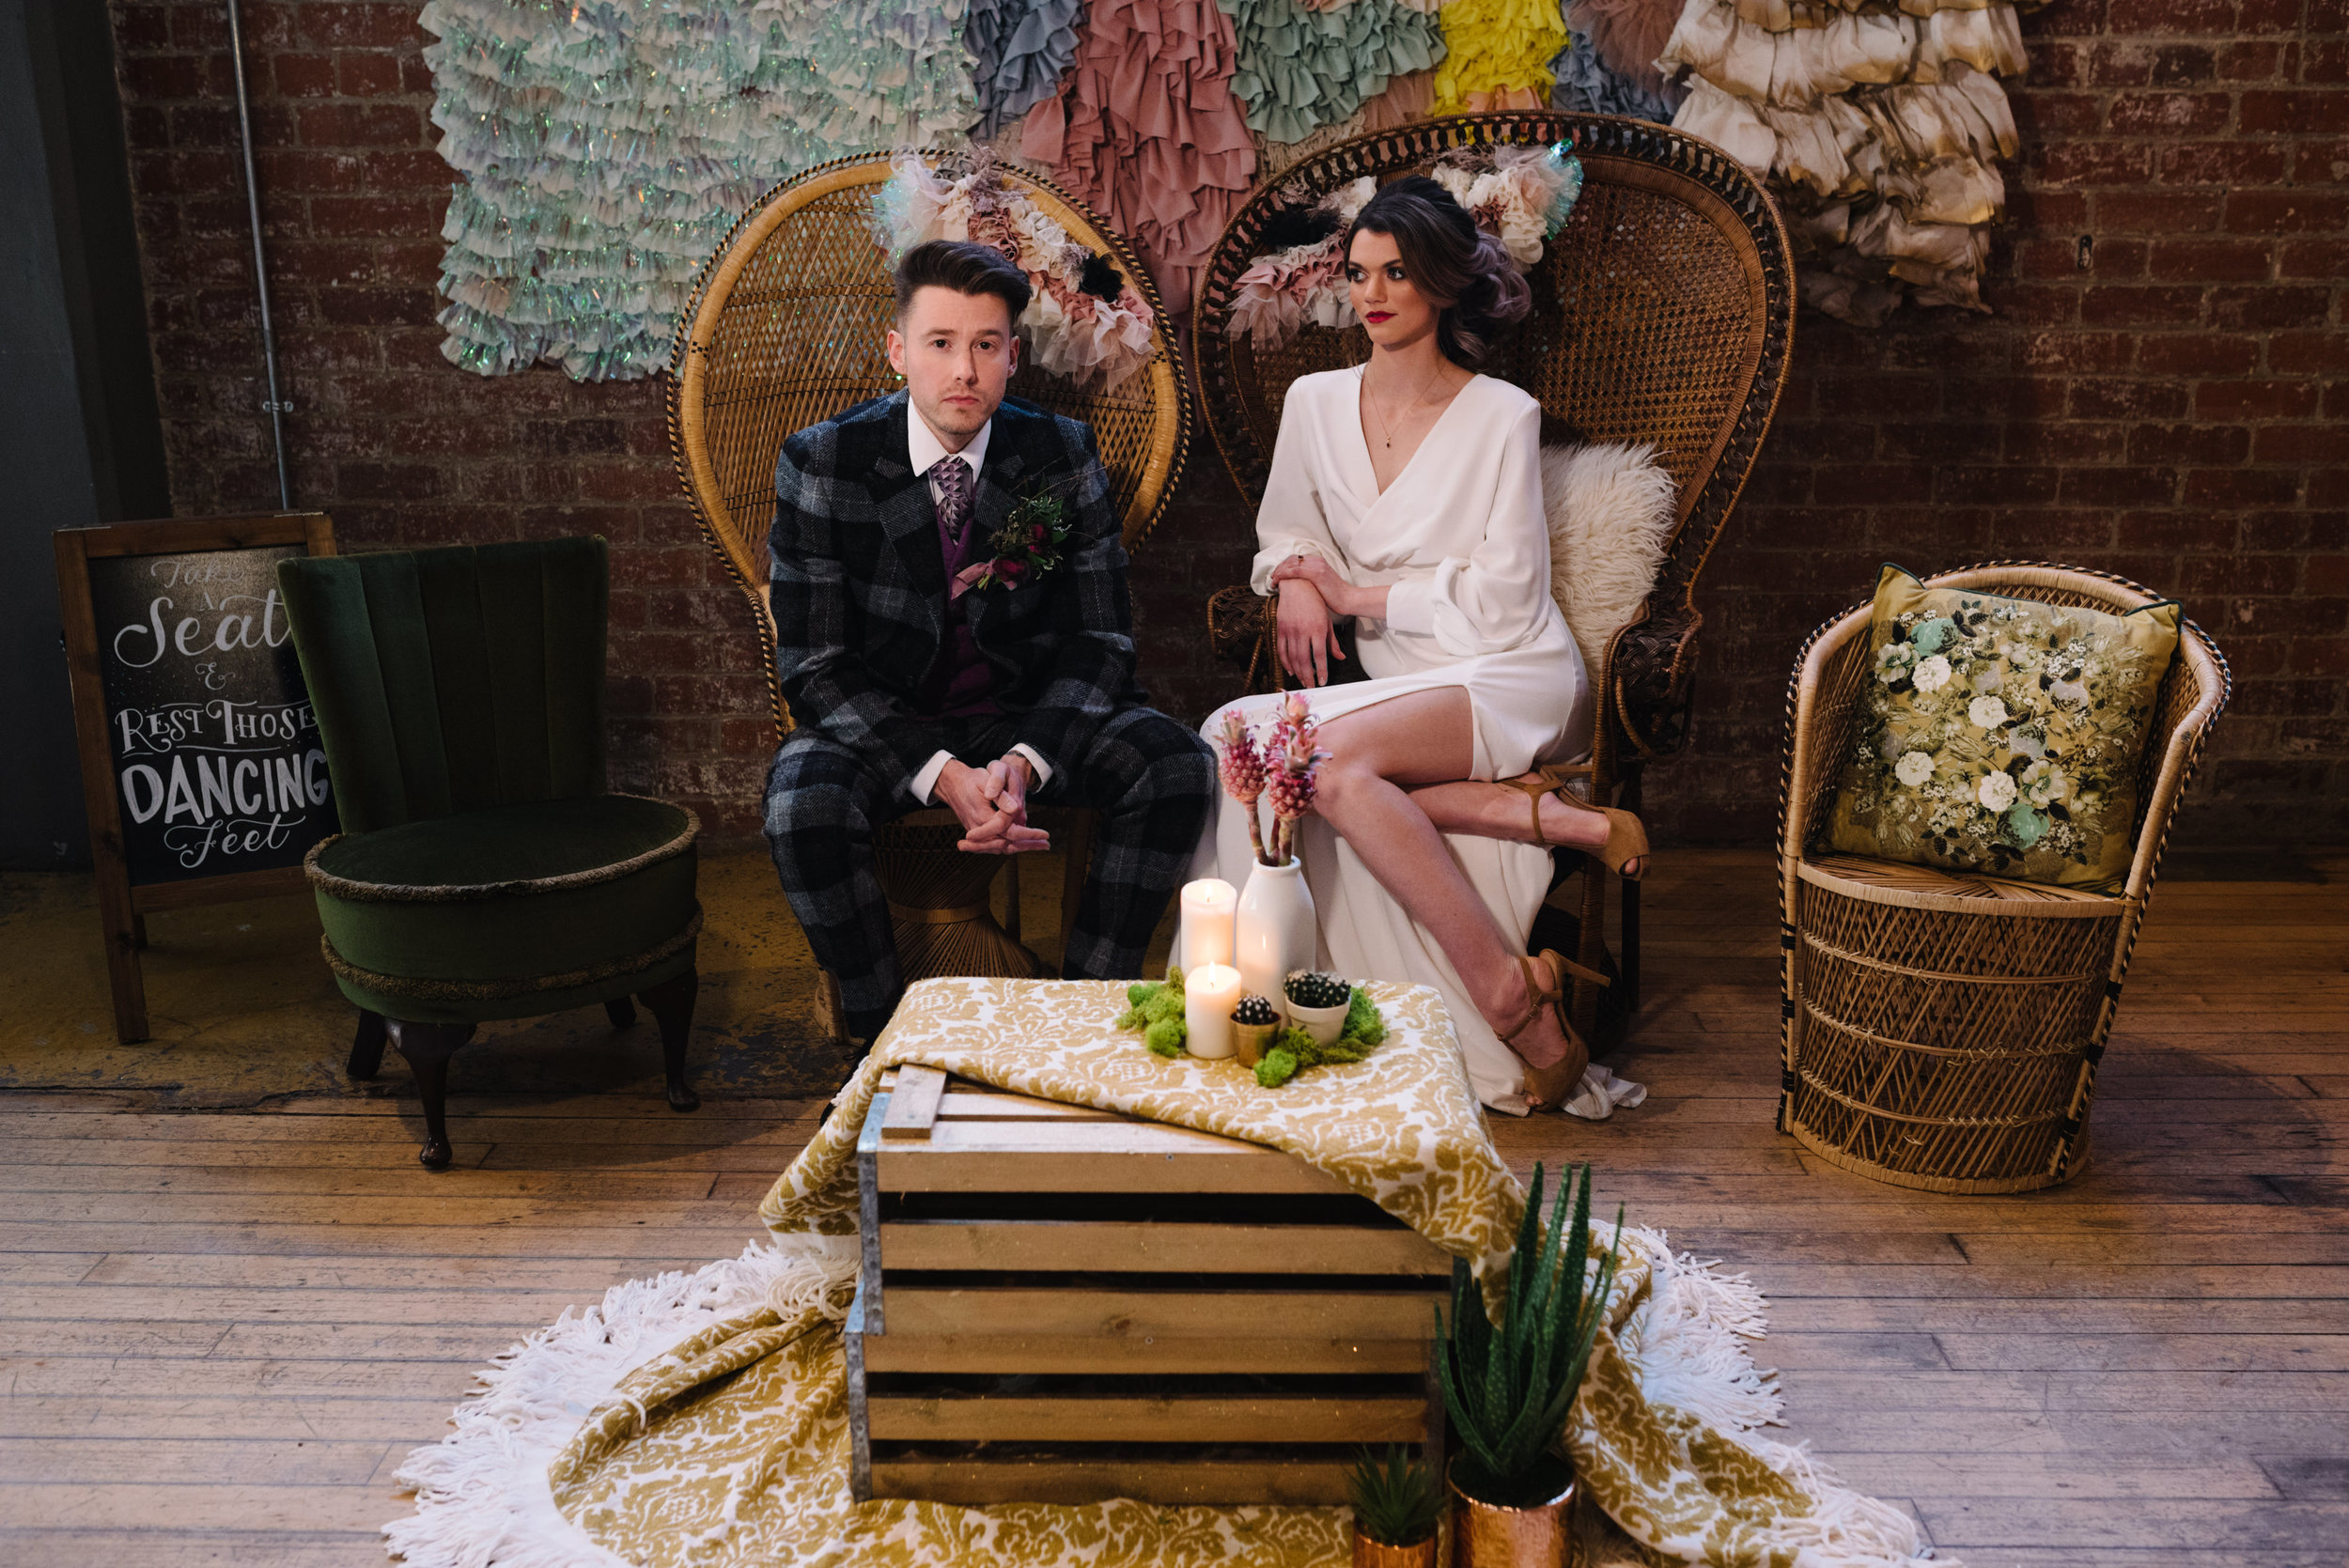 Modern Wedding Inspiration Shoot in Glasgow Brewery With a Frill Installation, Candy Floss and Neon 00135.jpg